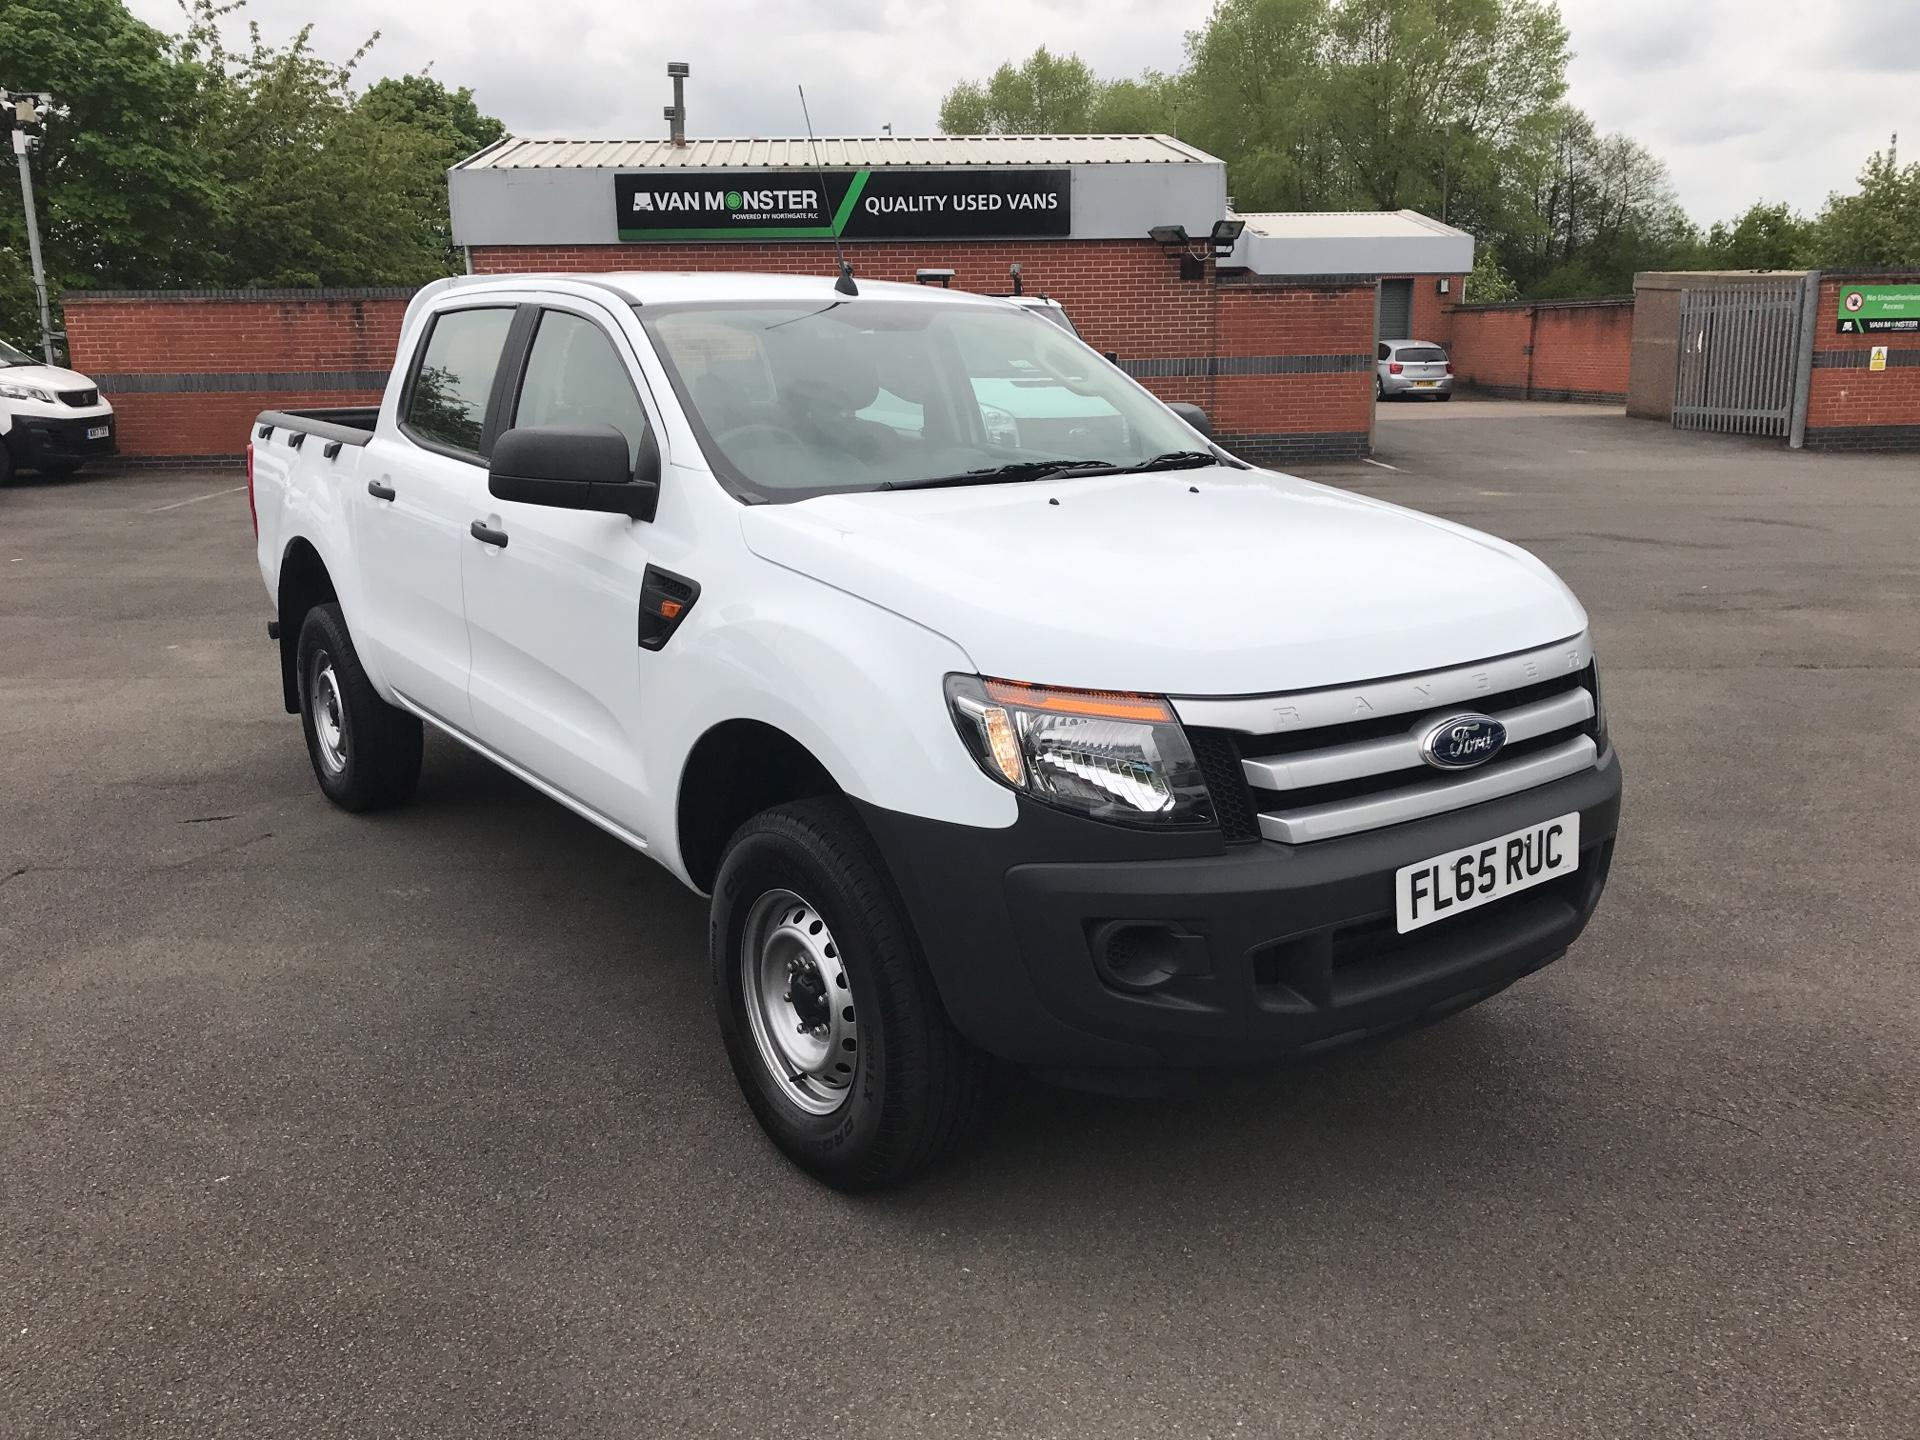 2015 Ford Ranger Pick Up Double Cab Xl 2.2 Tdci 150 4Wd (FL65RUC)